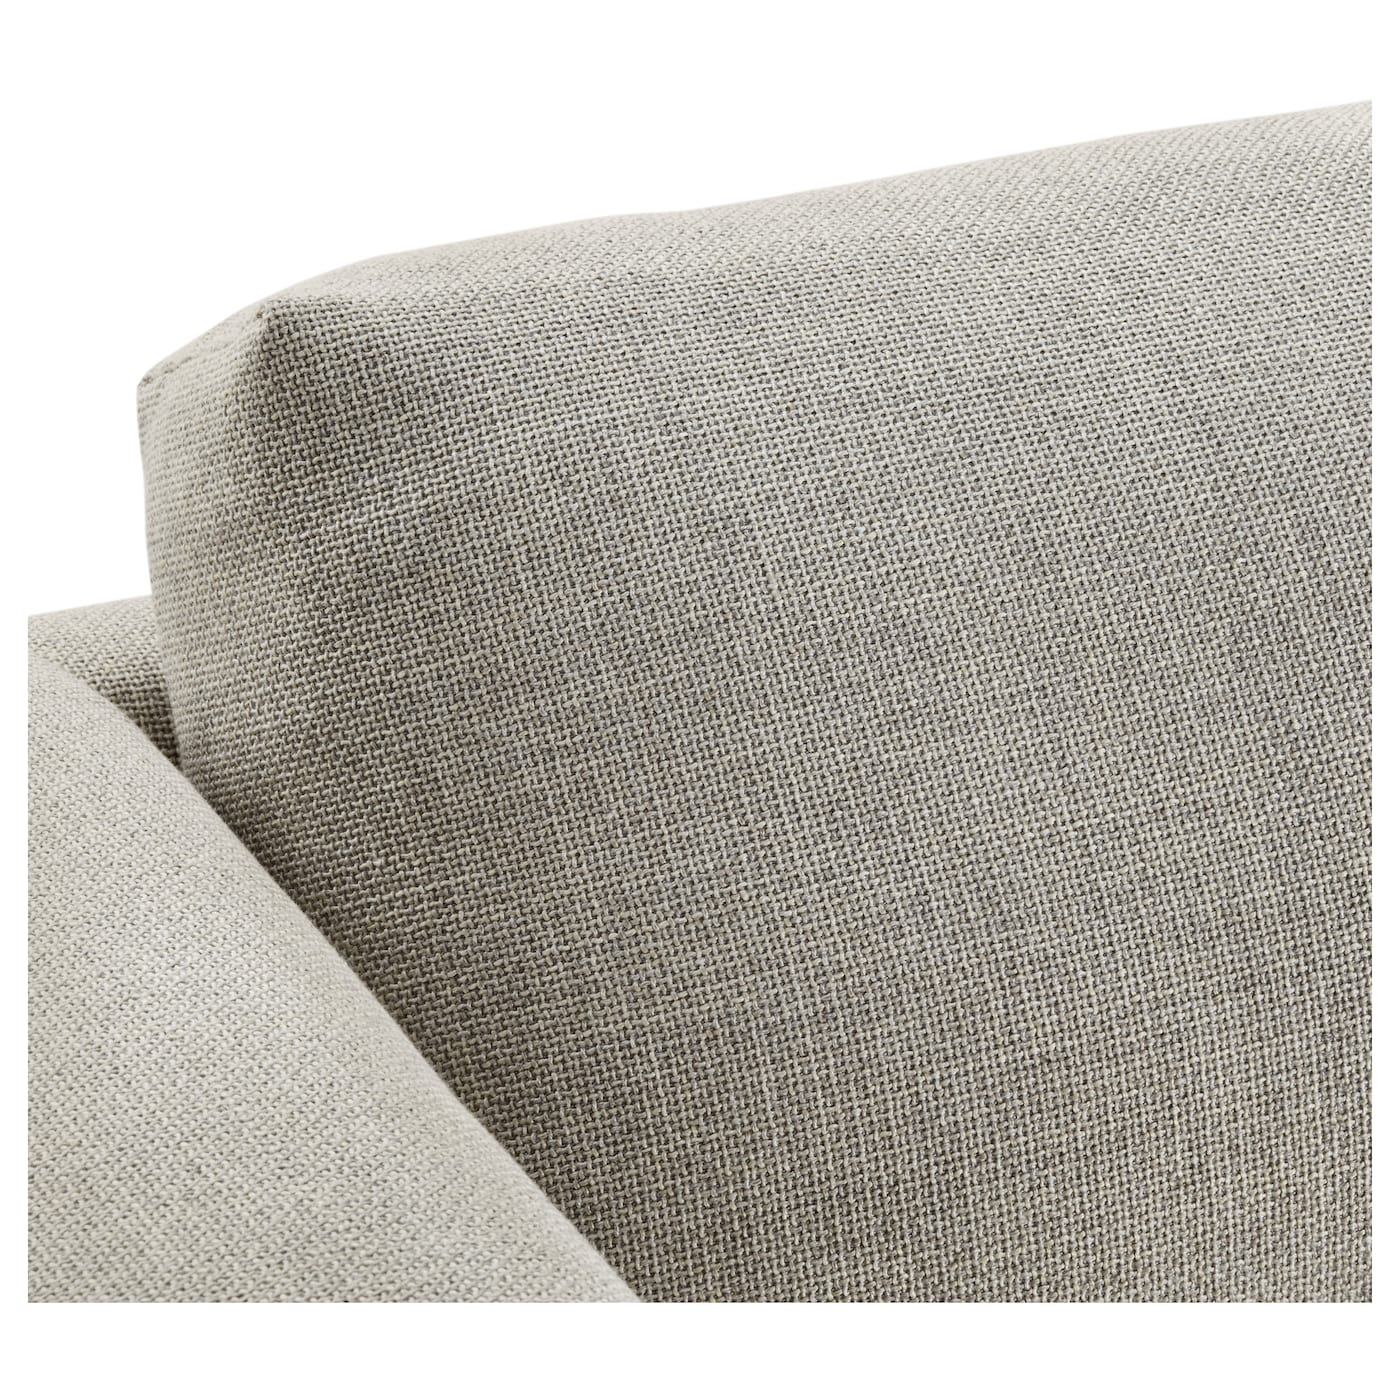 IKEA NOCKEBY two-seat sofa Heavy, hard-wearing fabric with structure, yarn dyed in different shades.